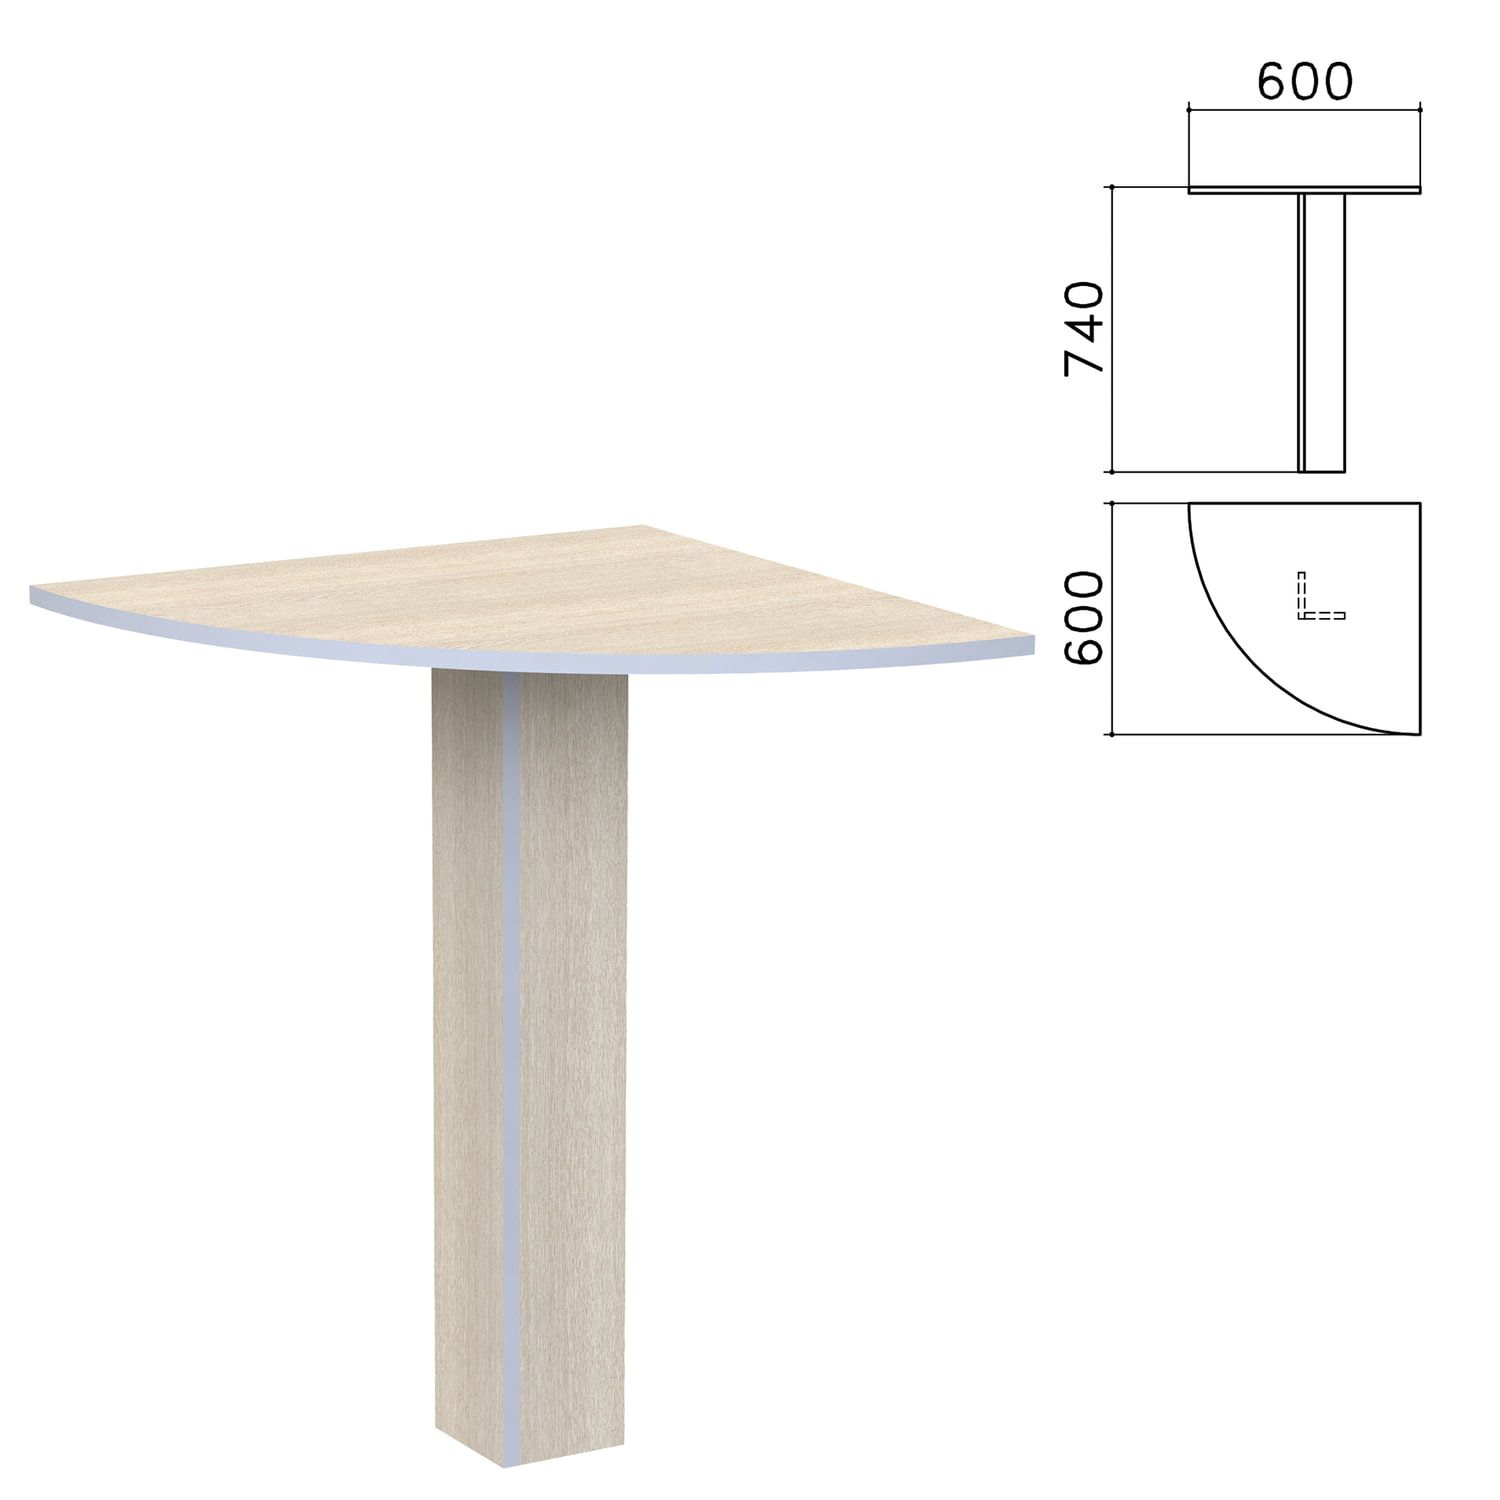 Budget corner table, 600 x600s740 mm, fairy light oak